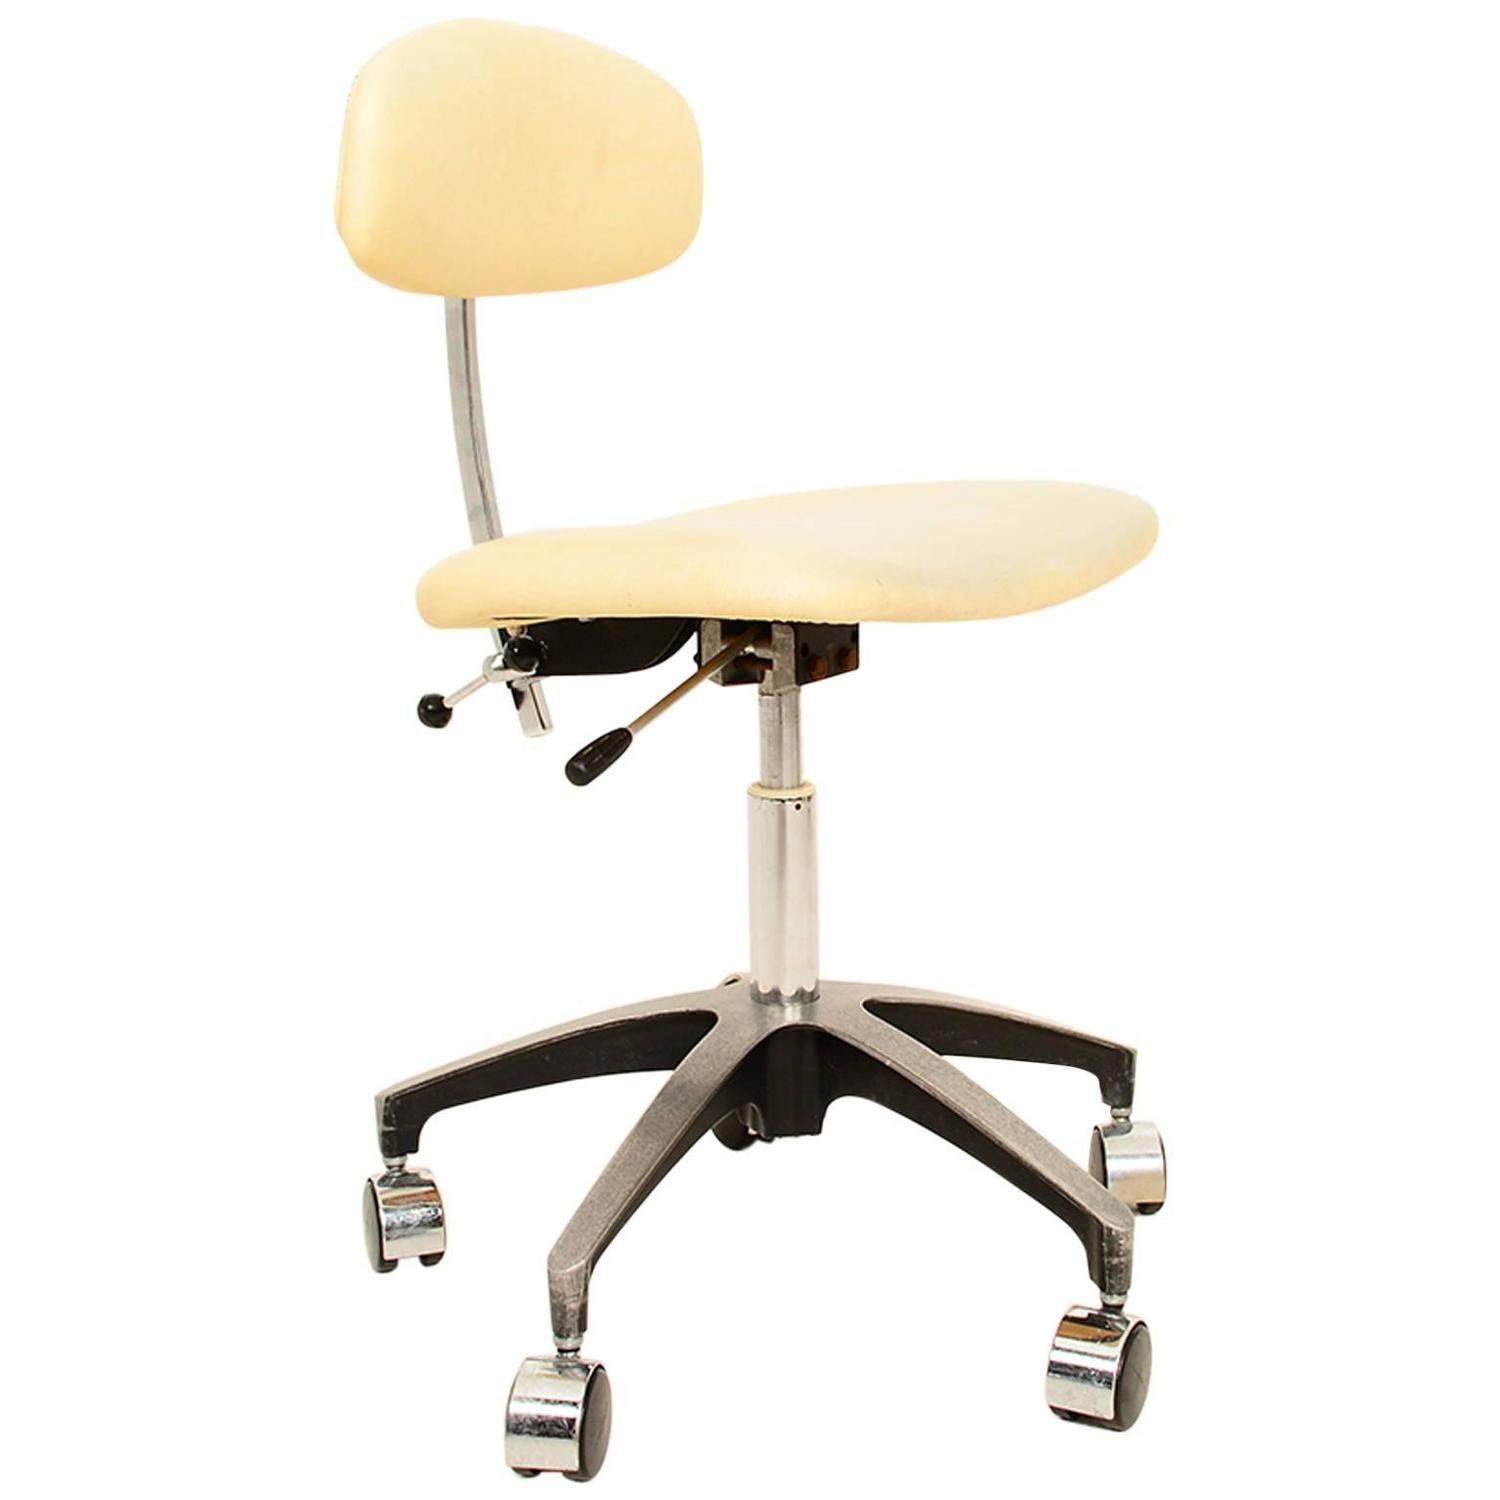 vintage office chairs for sale. Mid-Century Modern Industrial Office Desk Chair Vintage Chairs For Sale